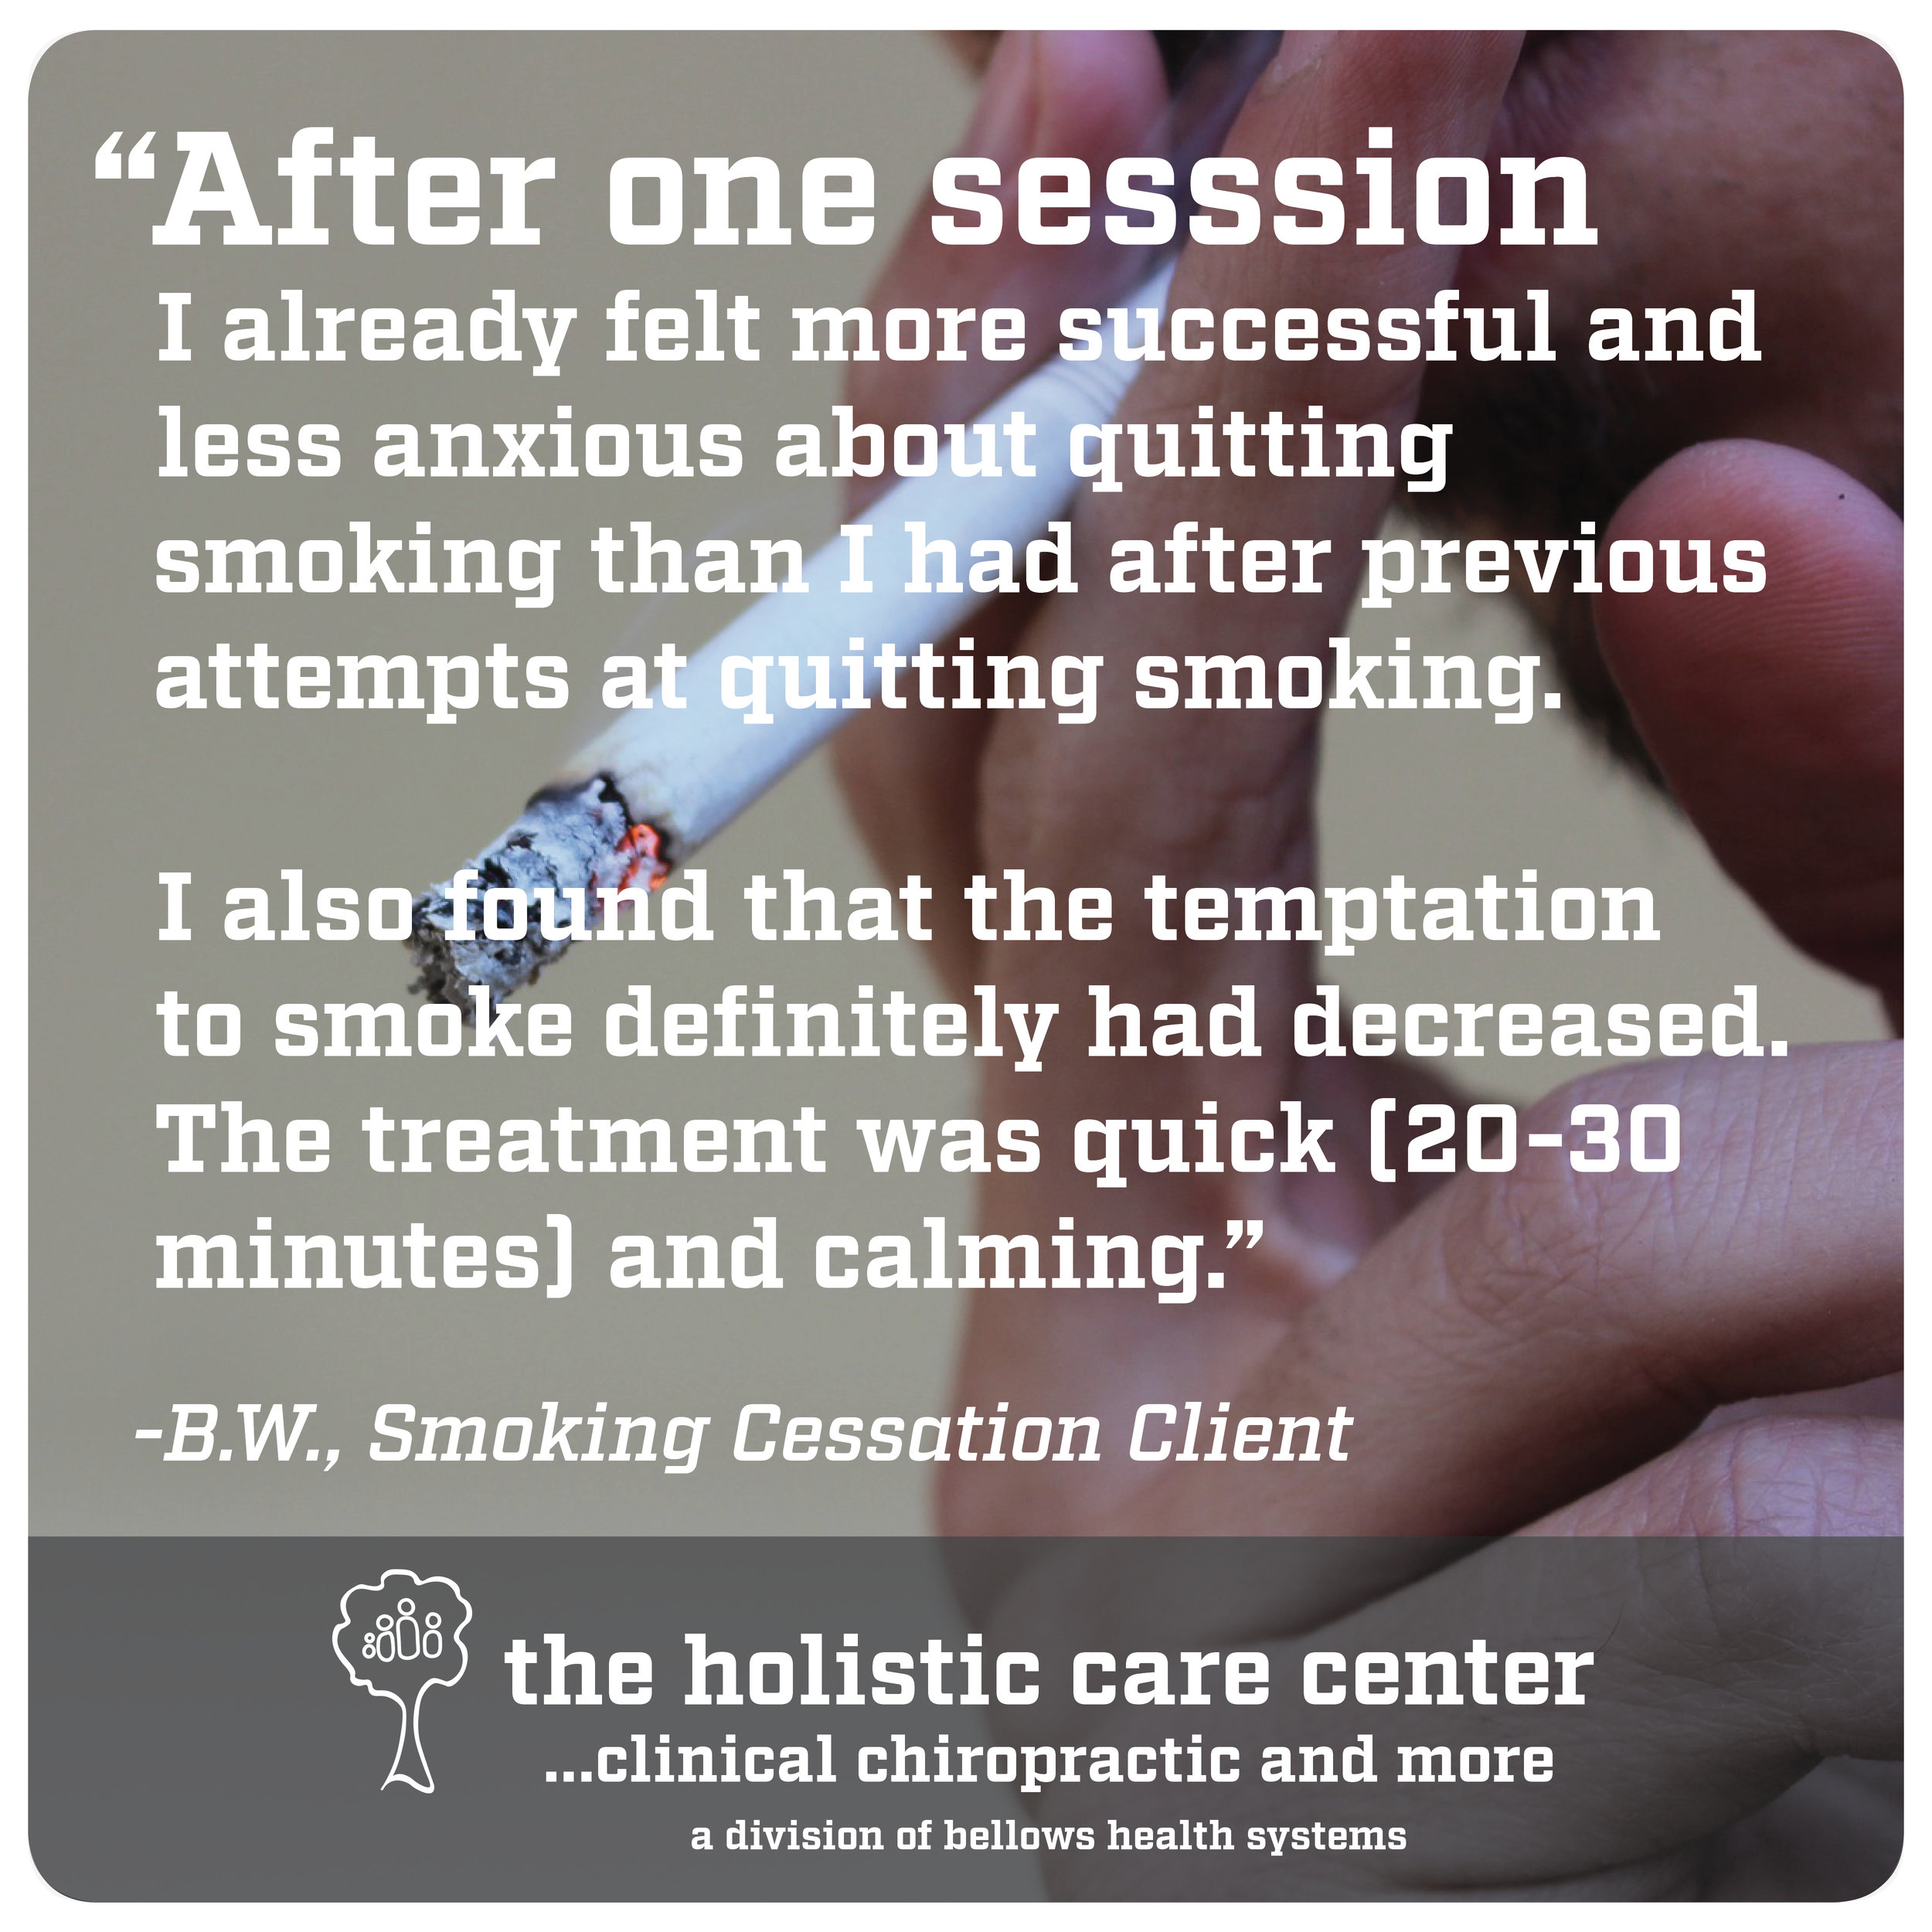 SMOKING CESSATION QUOTE.jpg